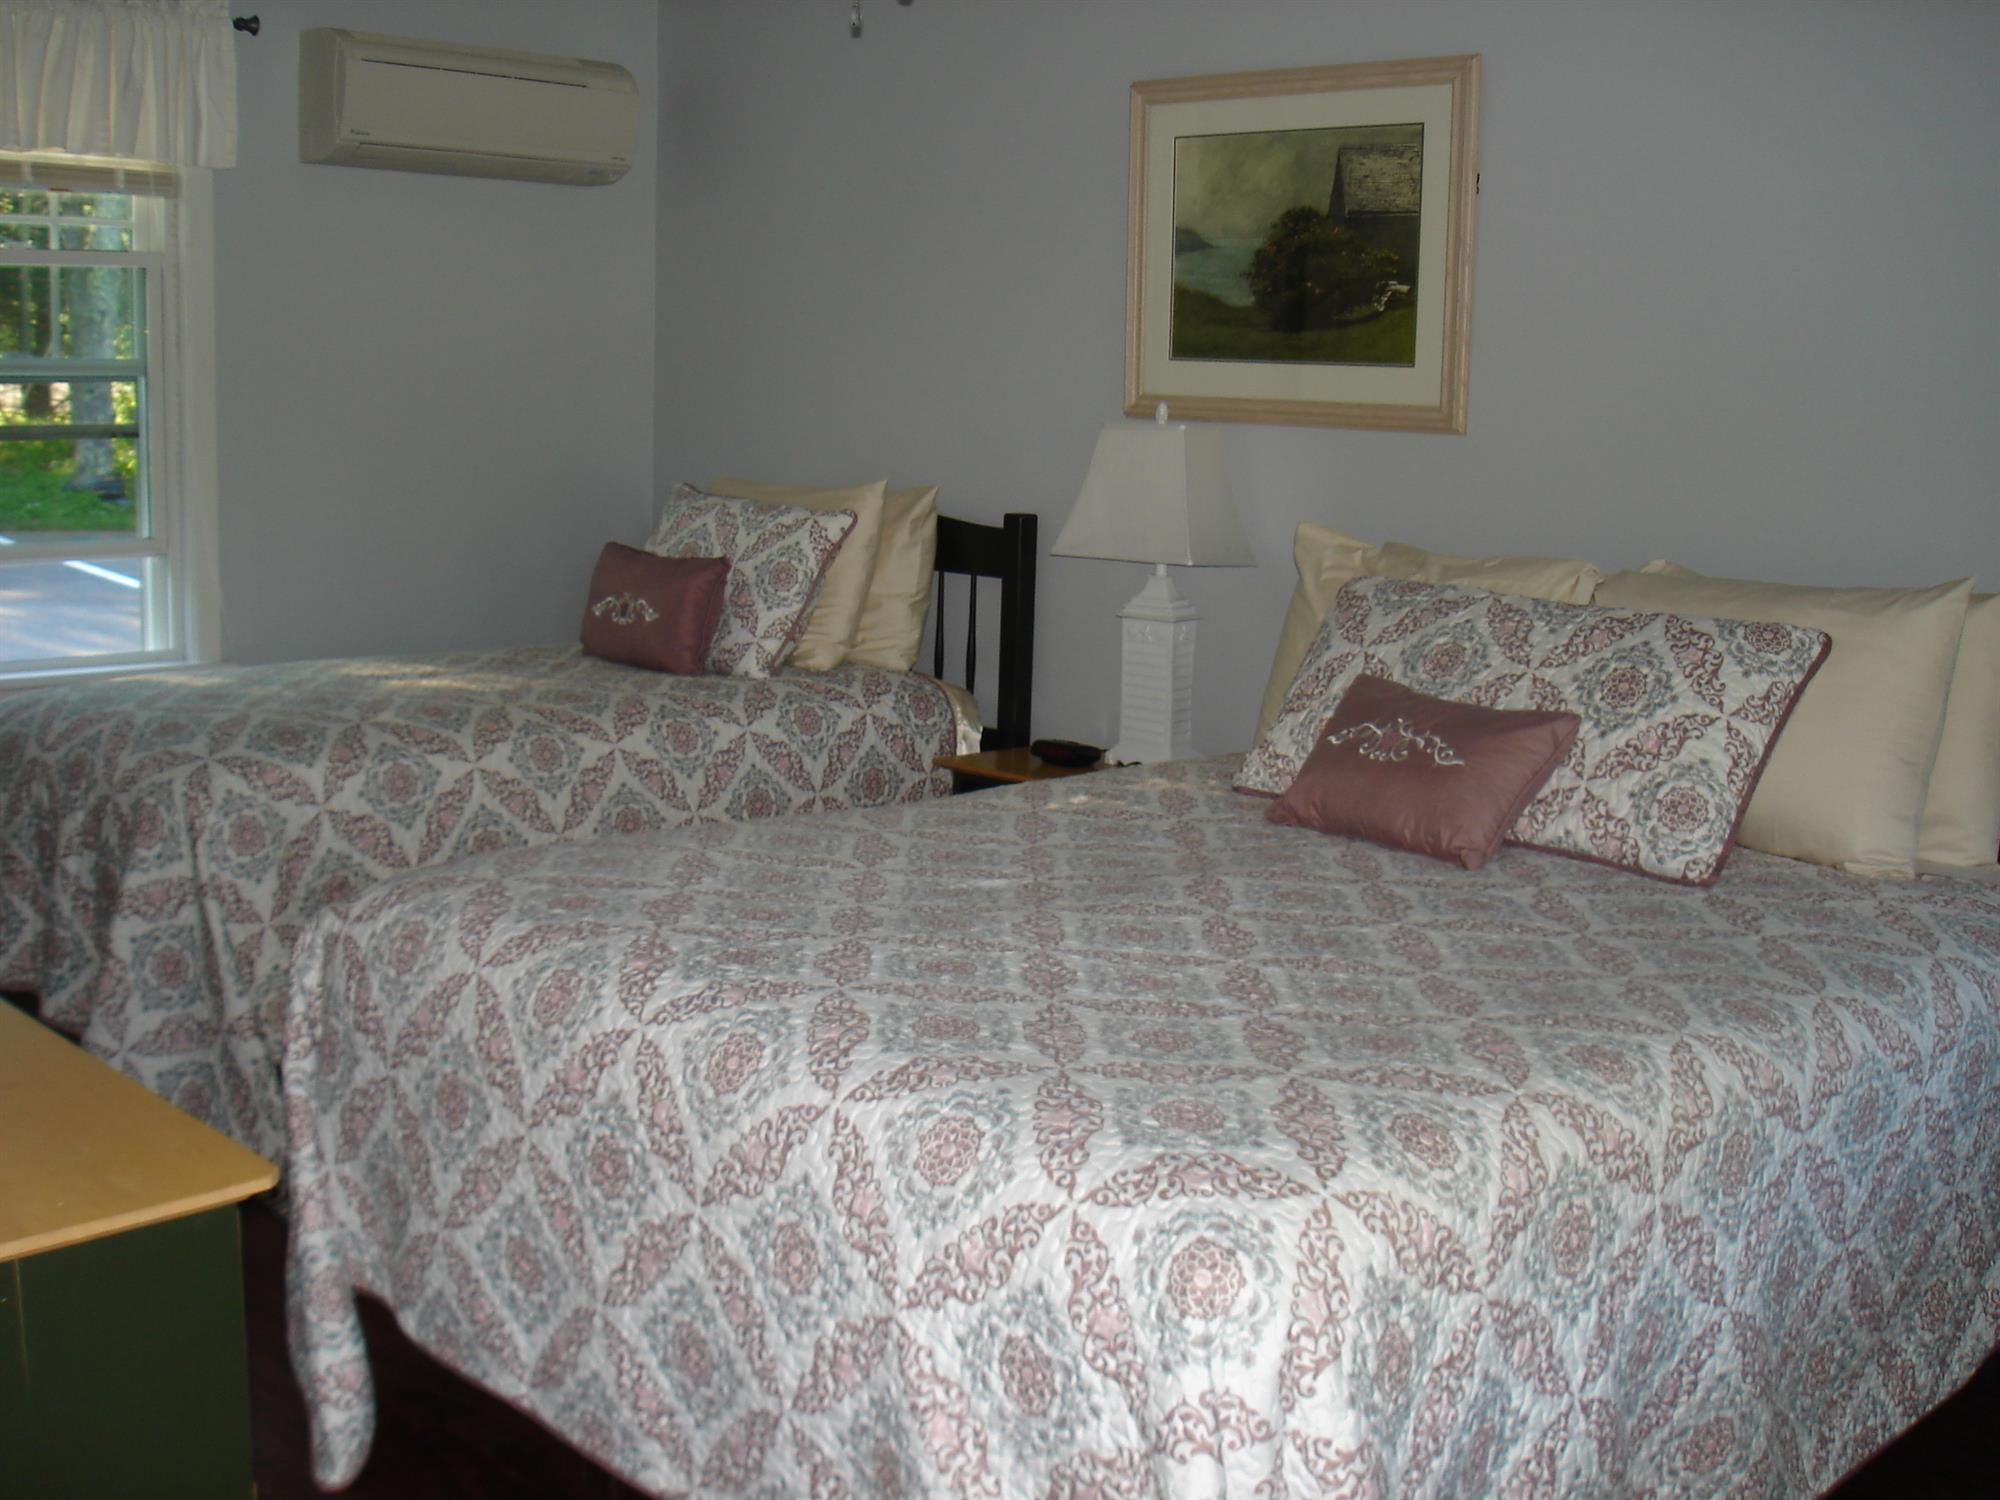 Image for Motel Room